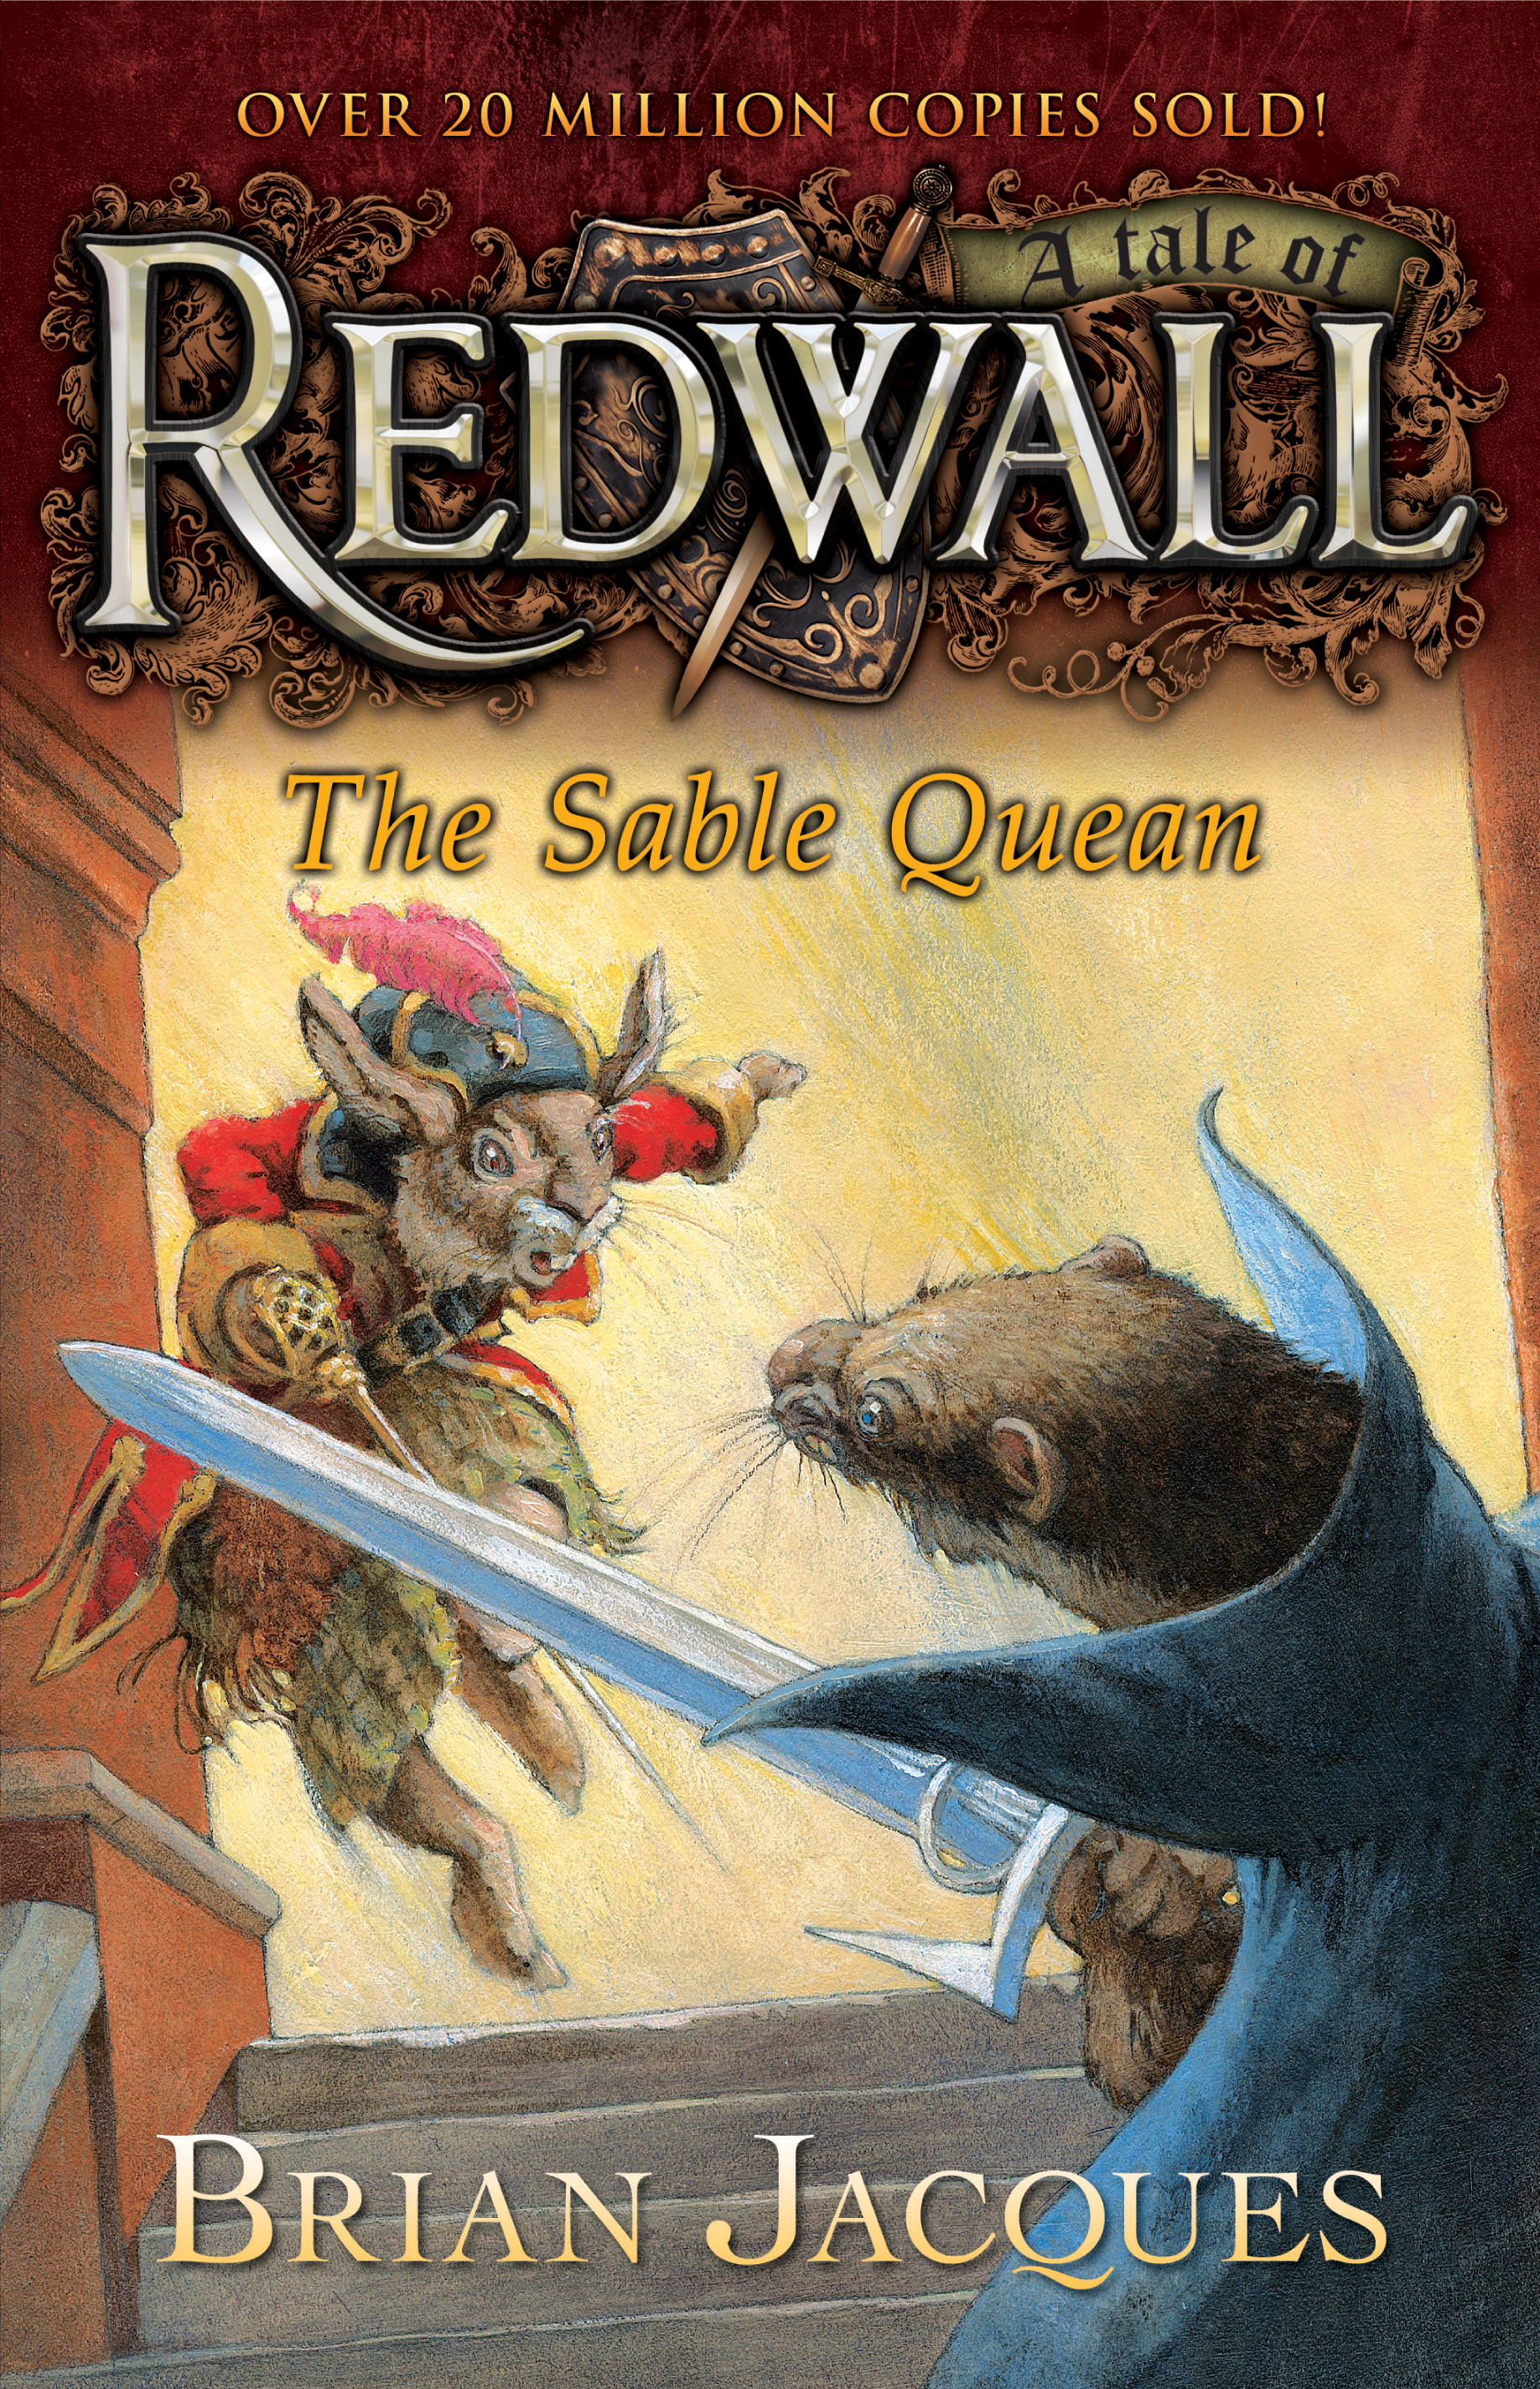 Book Cover Series Wiki : The sable quean redwall wiki fandom powered by wikia